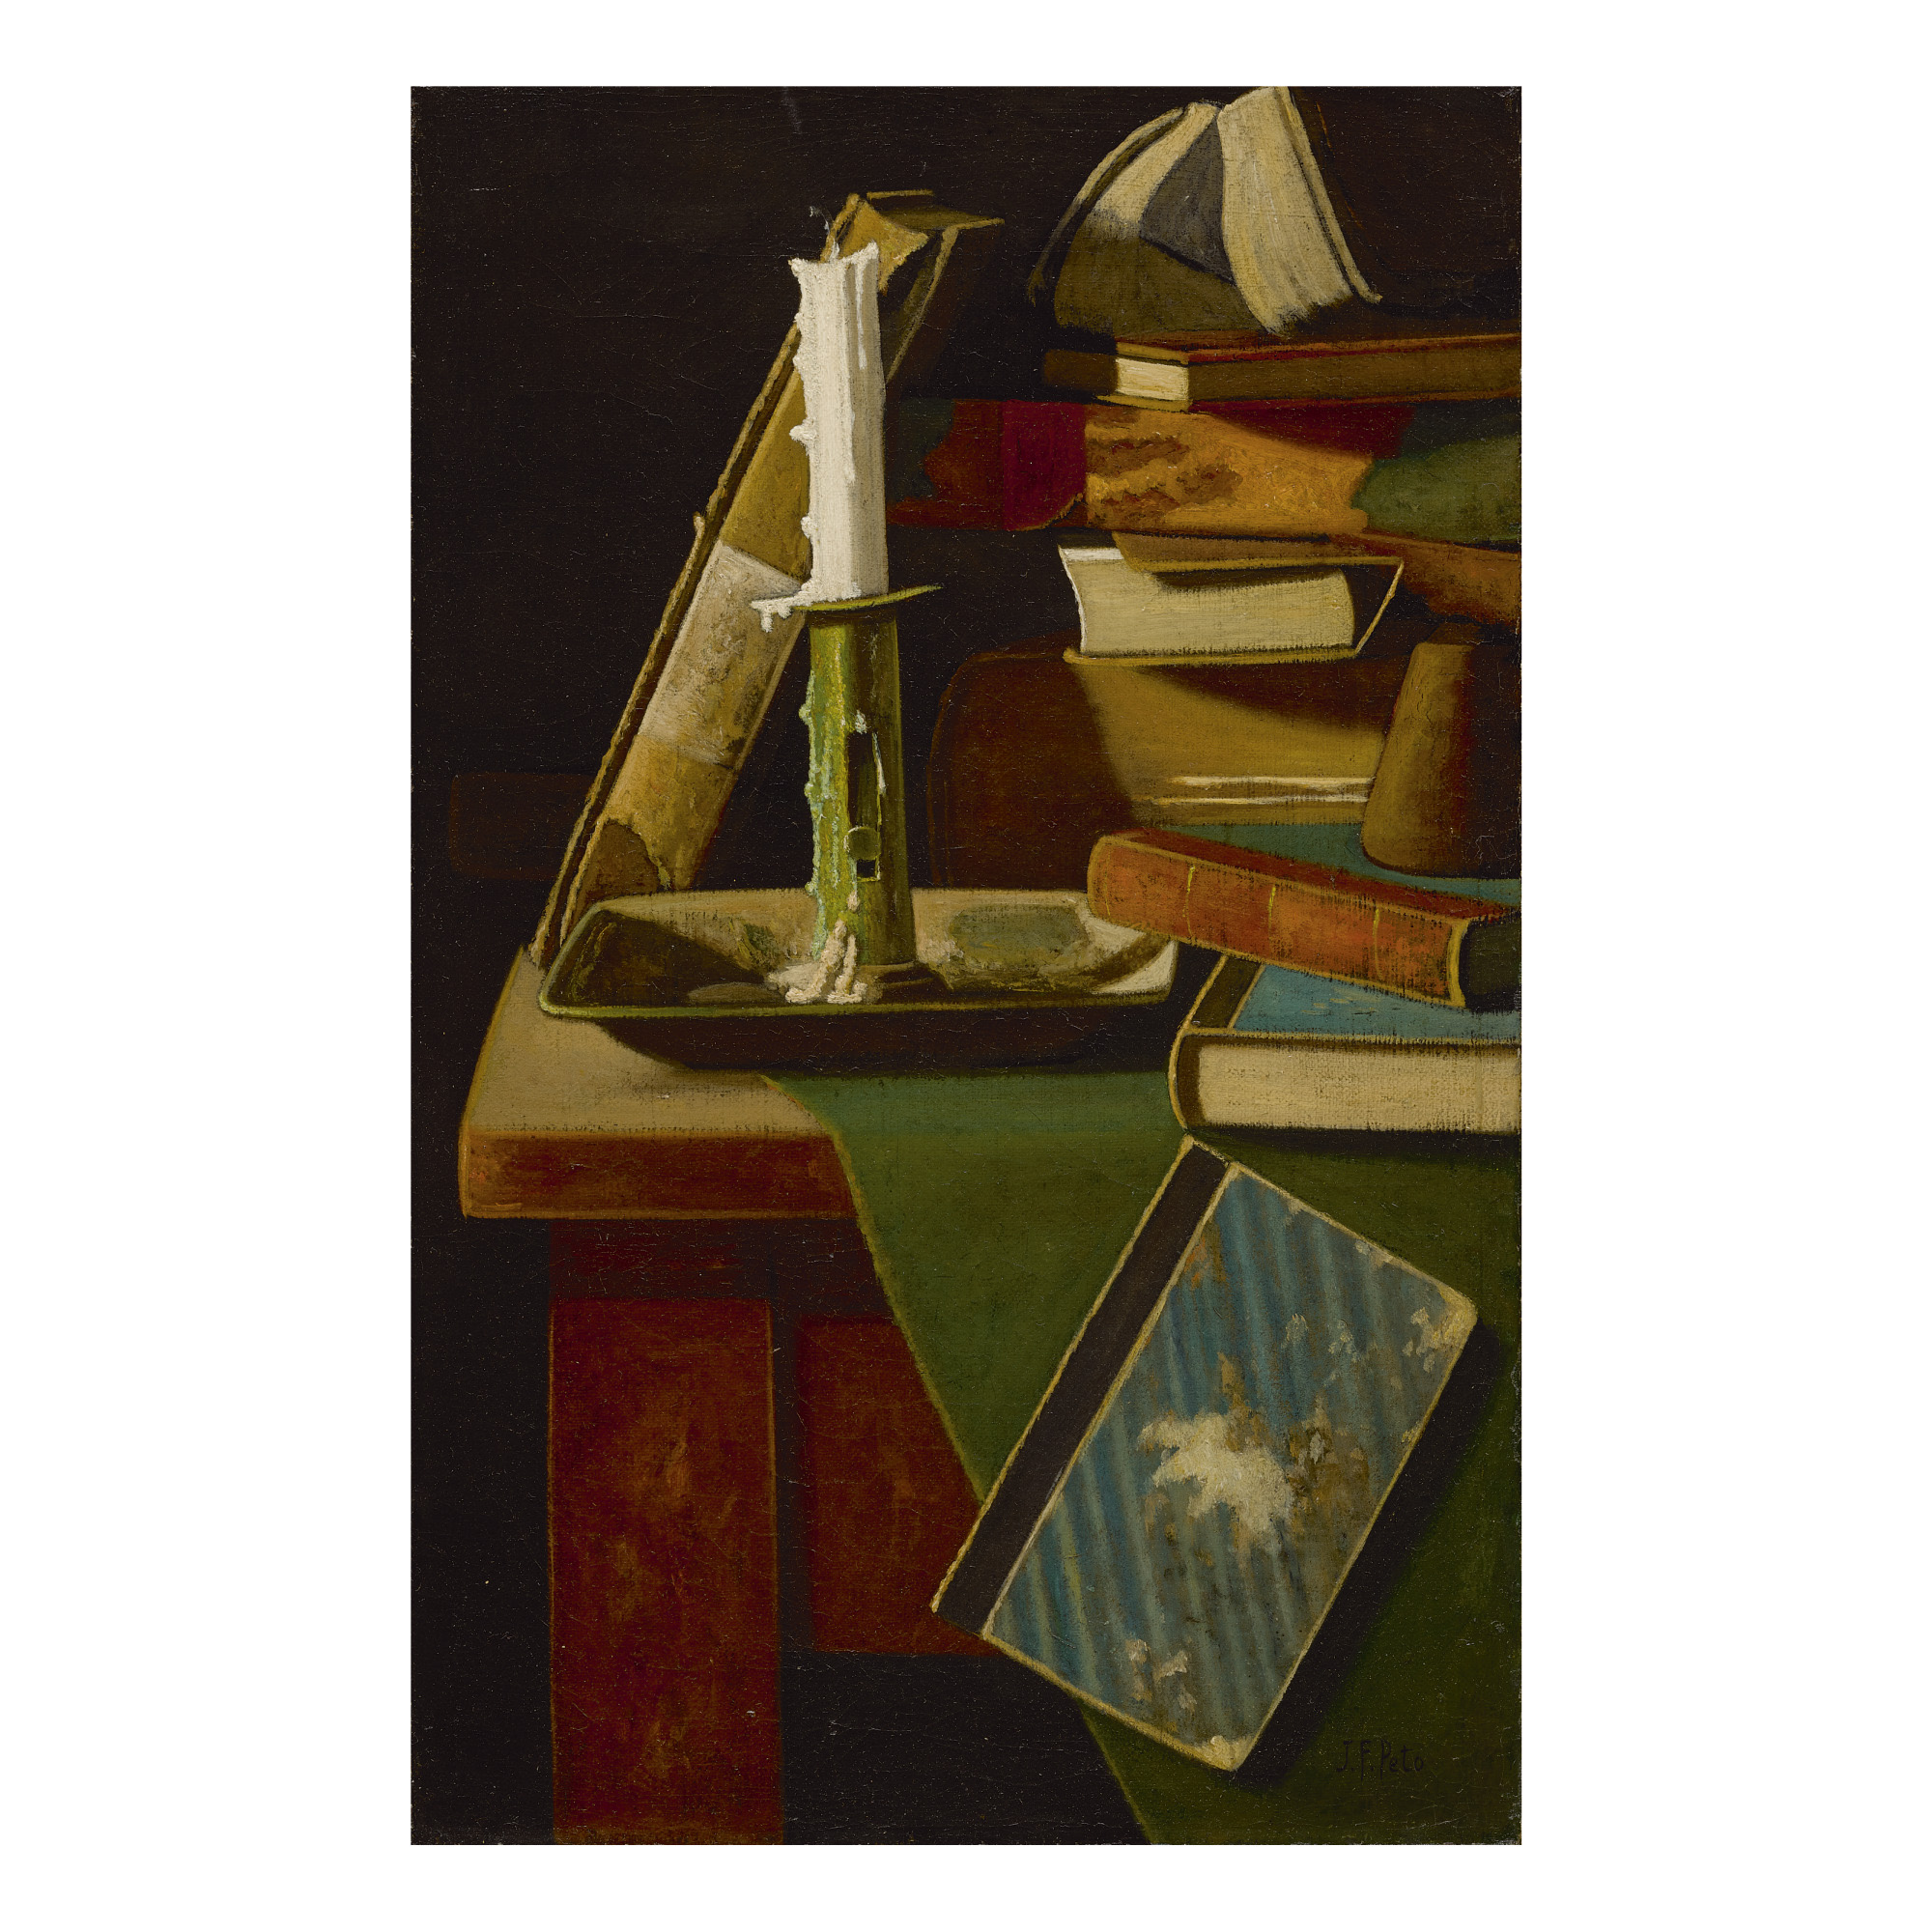 JOHN FREDERICK PETO | FORGOTTEN FRIENDS: CANDLESTICK AND BOOKS ON TABLE